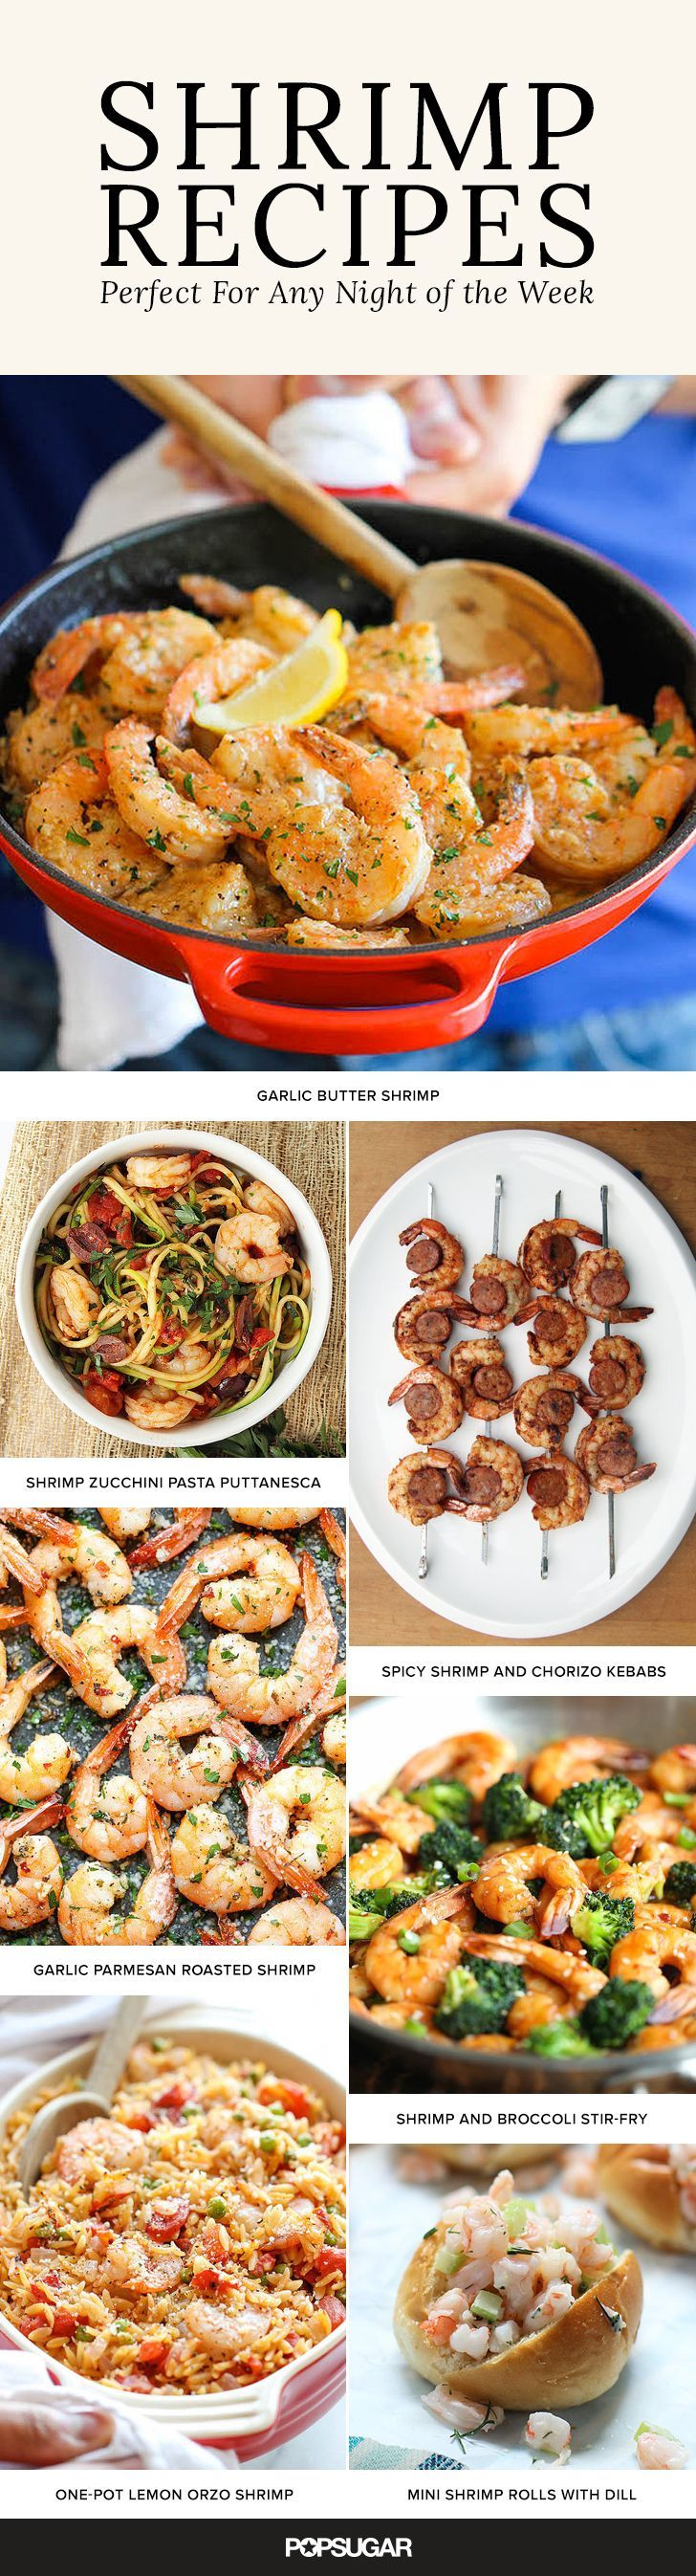 Shrimp has always been a fan favorite, and we've got a ton of shrimp recipes perfect for any night of the week. With dishes like Buffalo Shrimp Skewers, Garlic Parmesan Roasted Shrimp, and crispy Coconut Shrimp you'll have the whole family hungry for more!